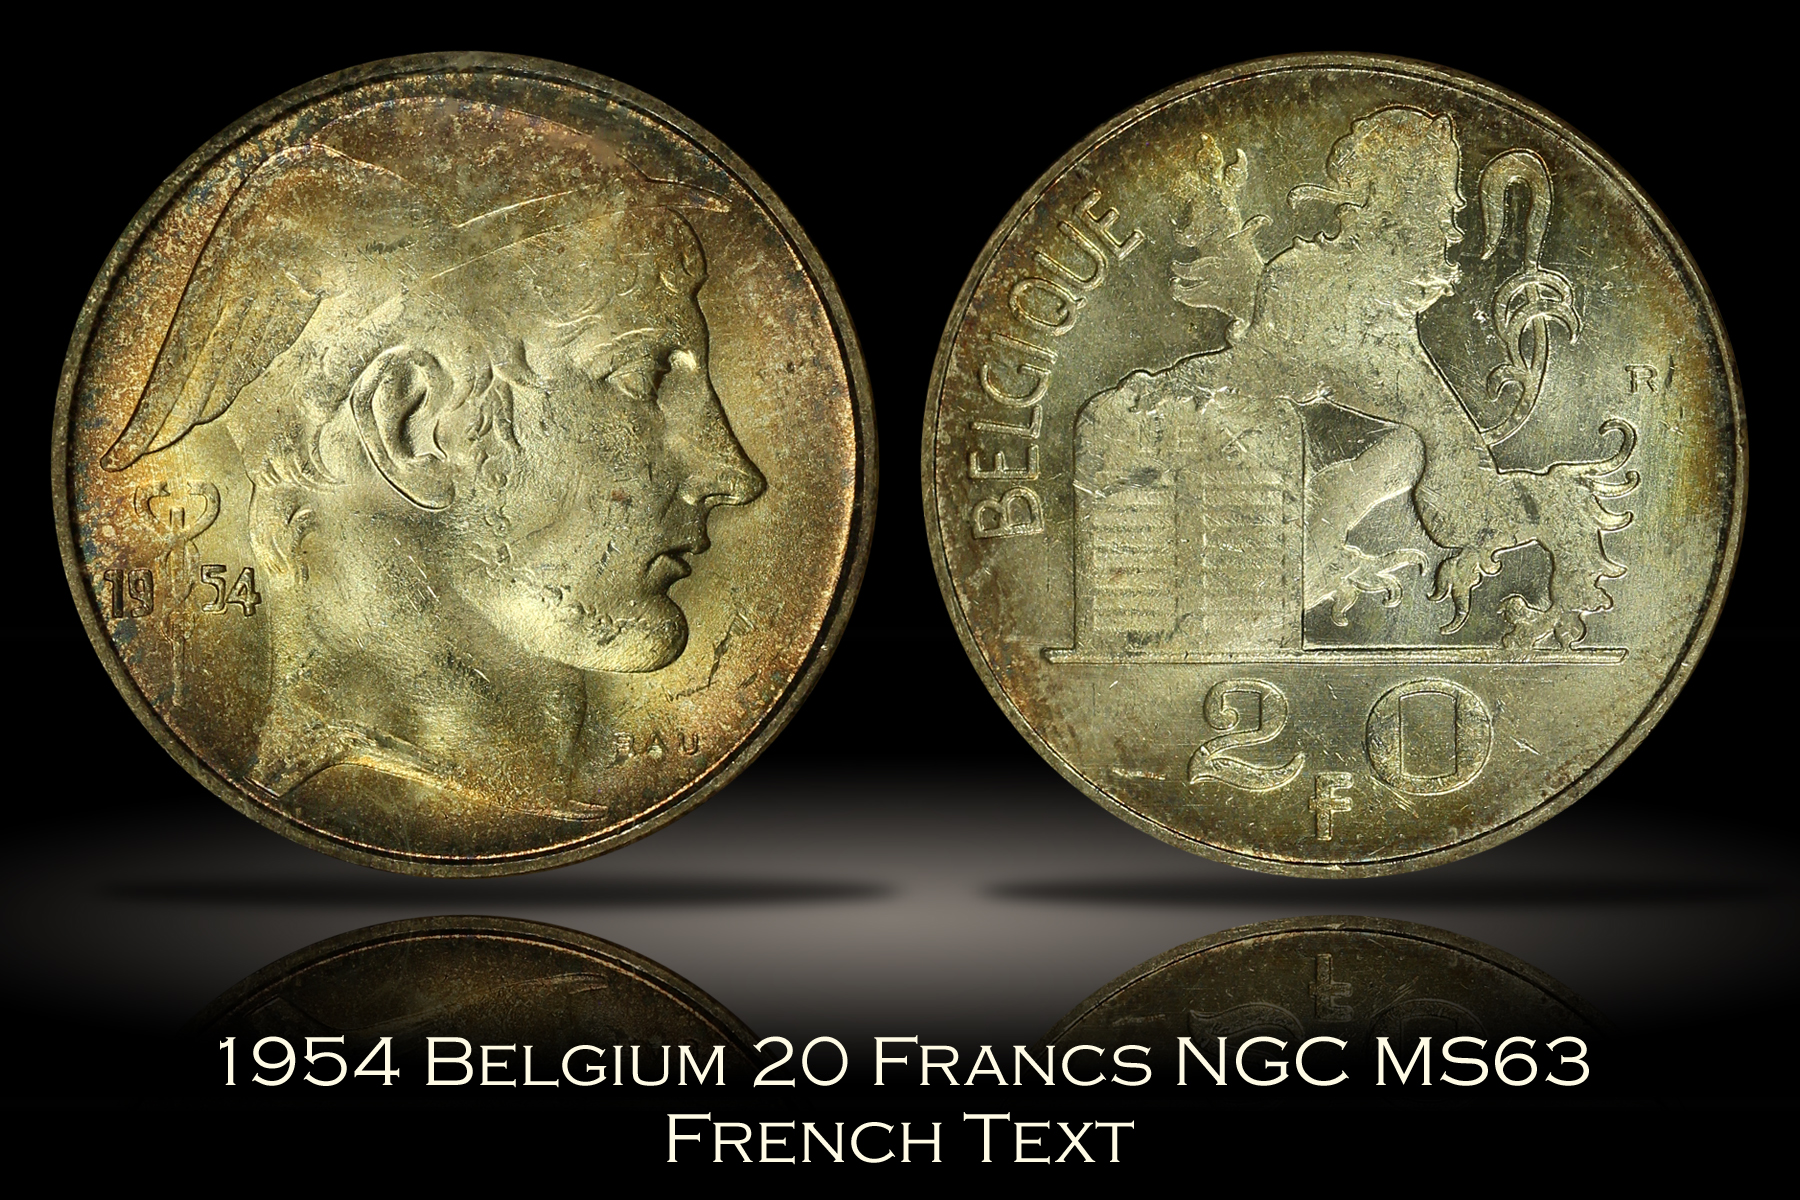 1954 Belgium 20 Francs French Text NGC MS63